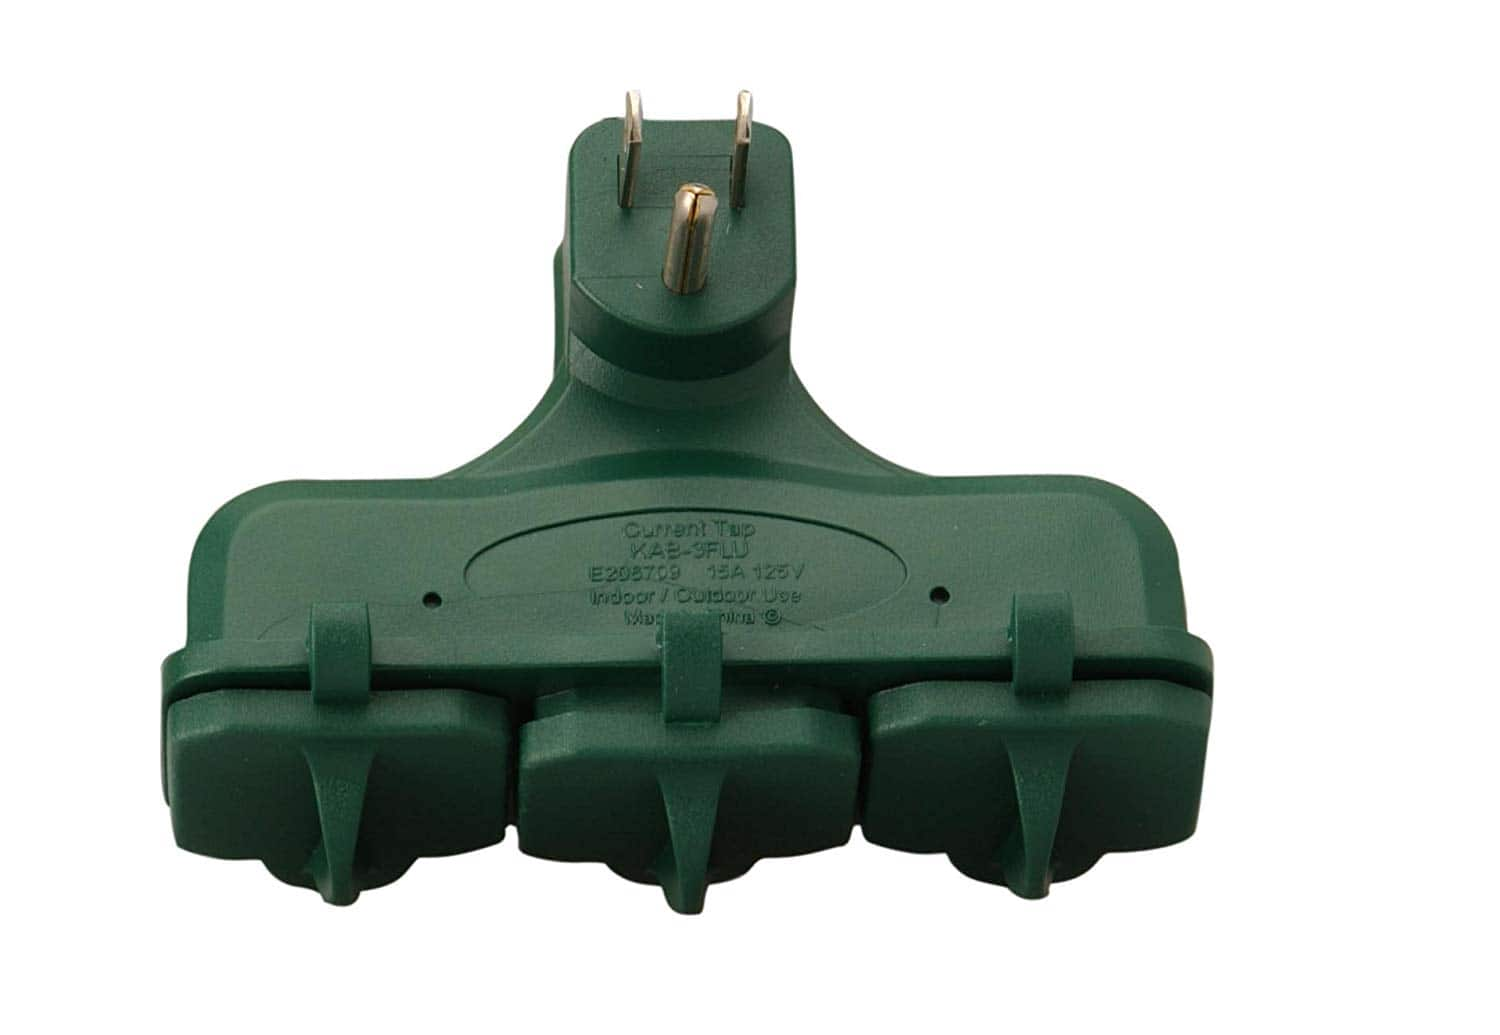 Woods 3-Outlet Adapter For Outdoors Or Indoors $4.09